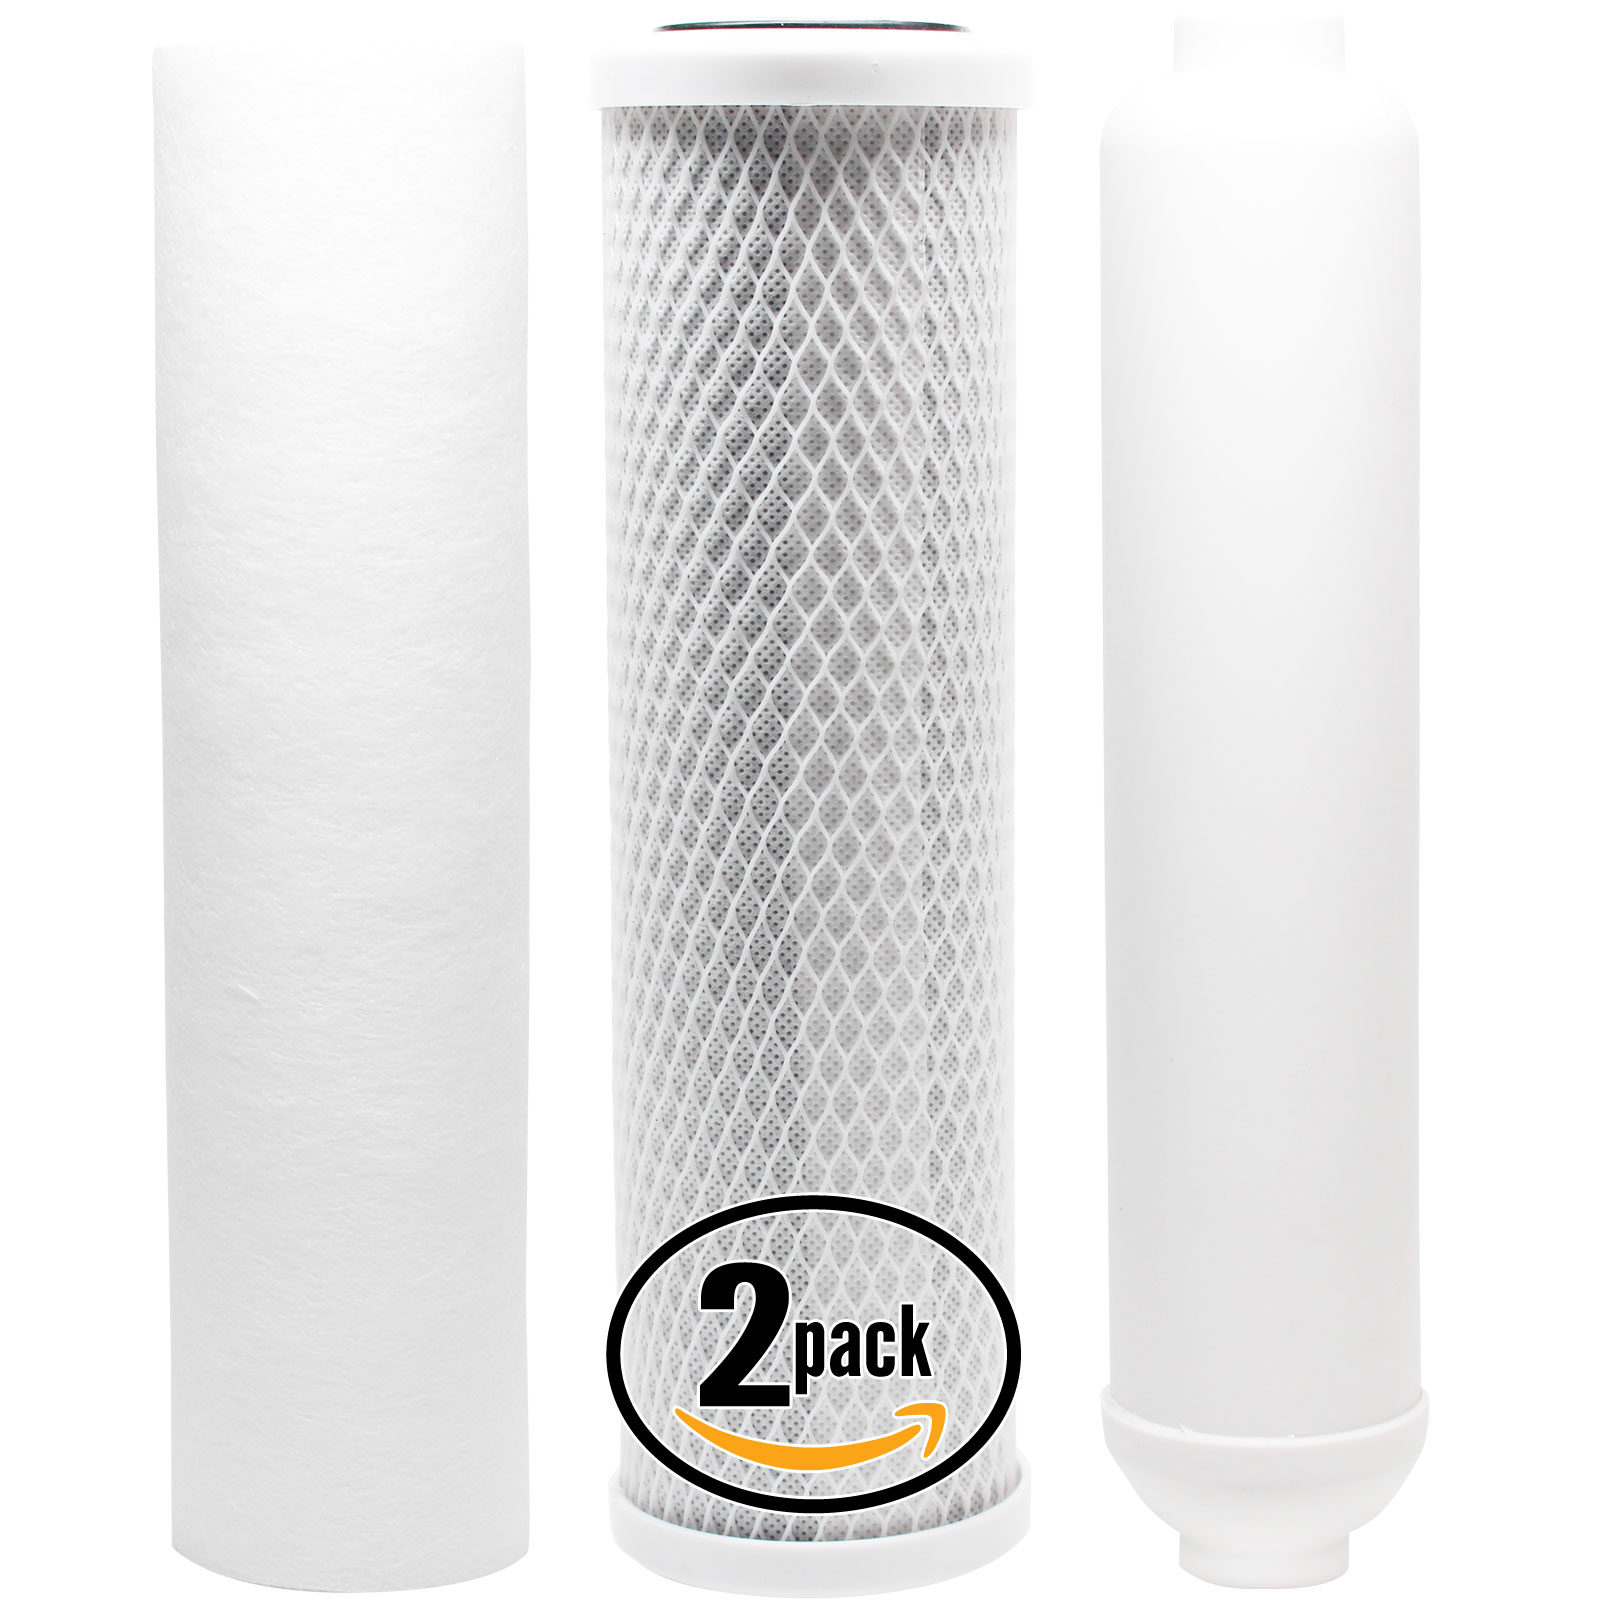 2-Pack Replacement Filter Kit for Topway Global (TGI) WIN-445 RO System - Includes Carbon Block Filter, PP Sediment Filter & Inline Filter Cartridge - Denali Pure Brand